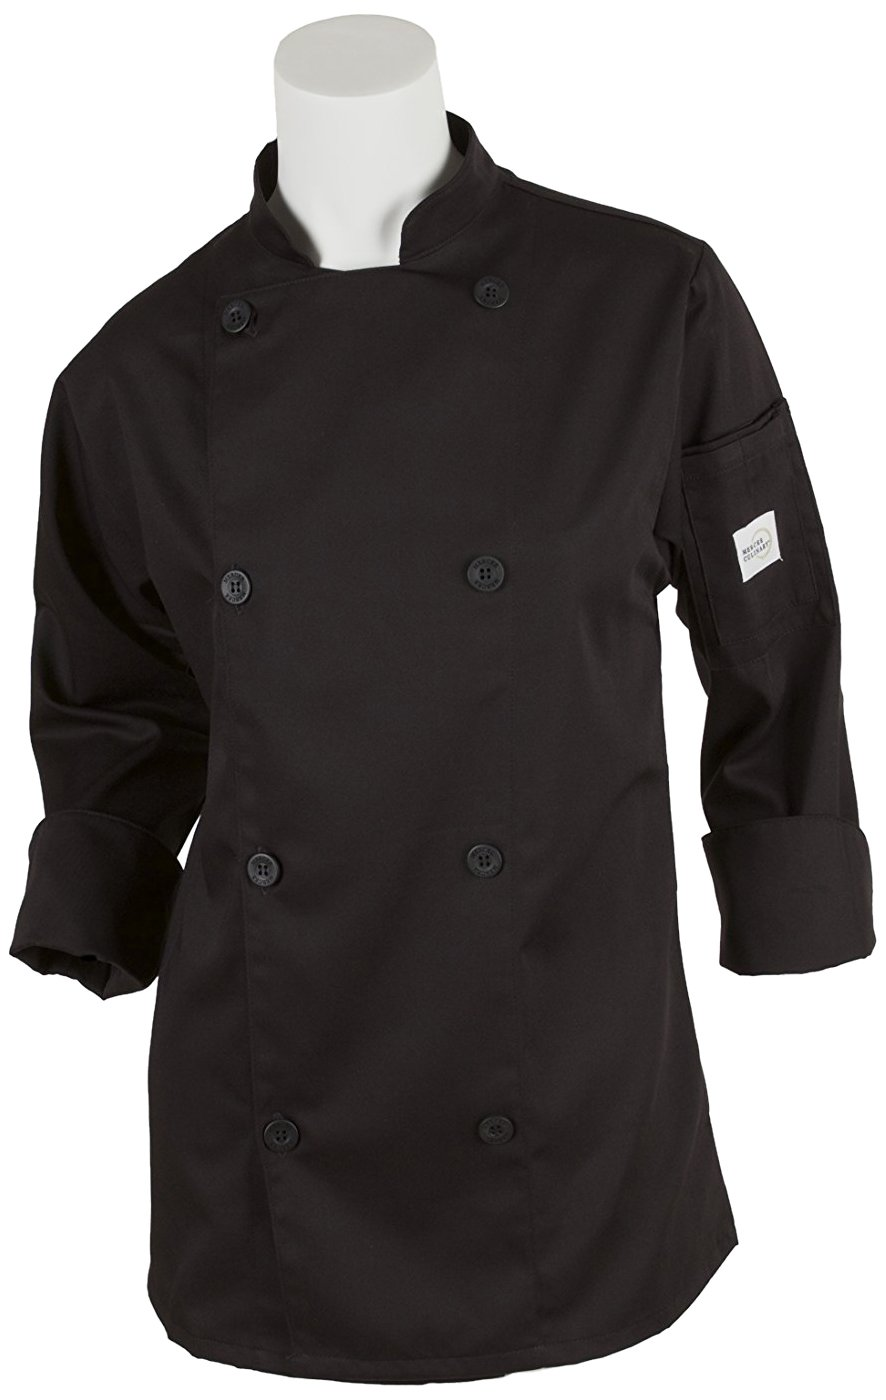 Mercer Culinary M61030BK3X Genesis Women's Chef Jacket with Traditional Buttons, 3X-Large, Black